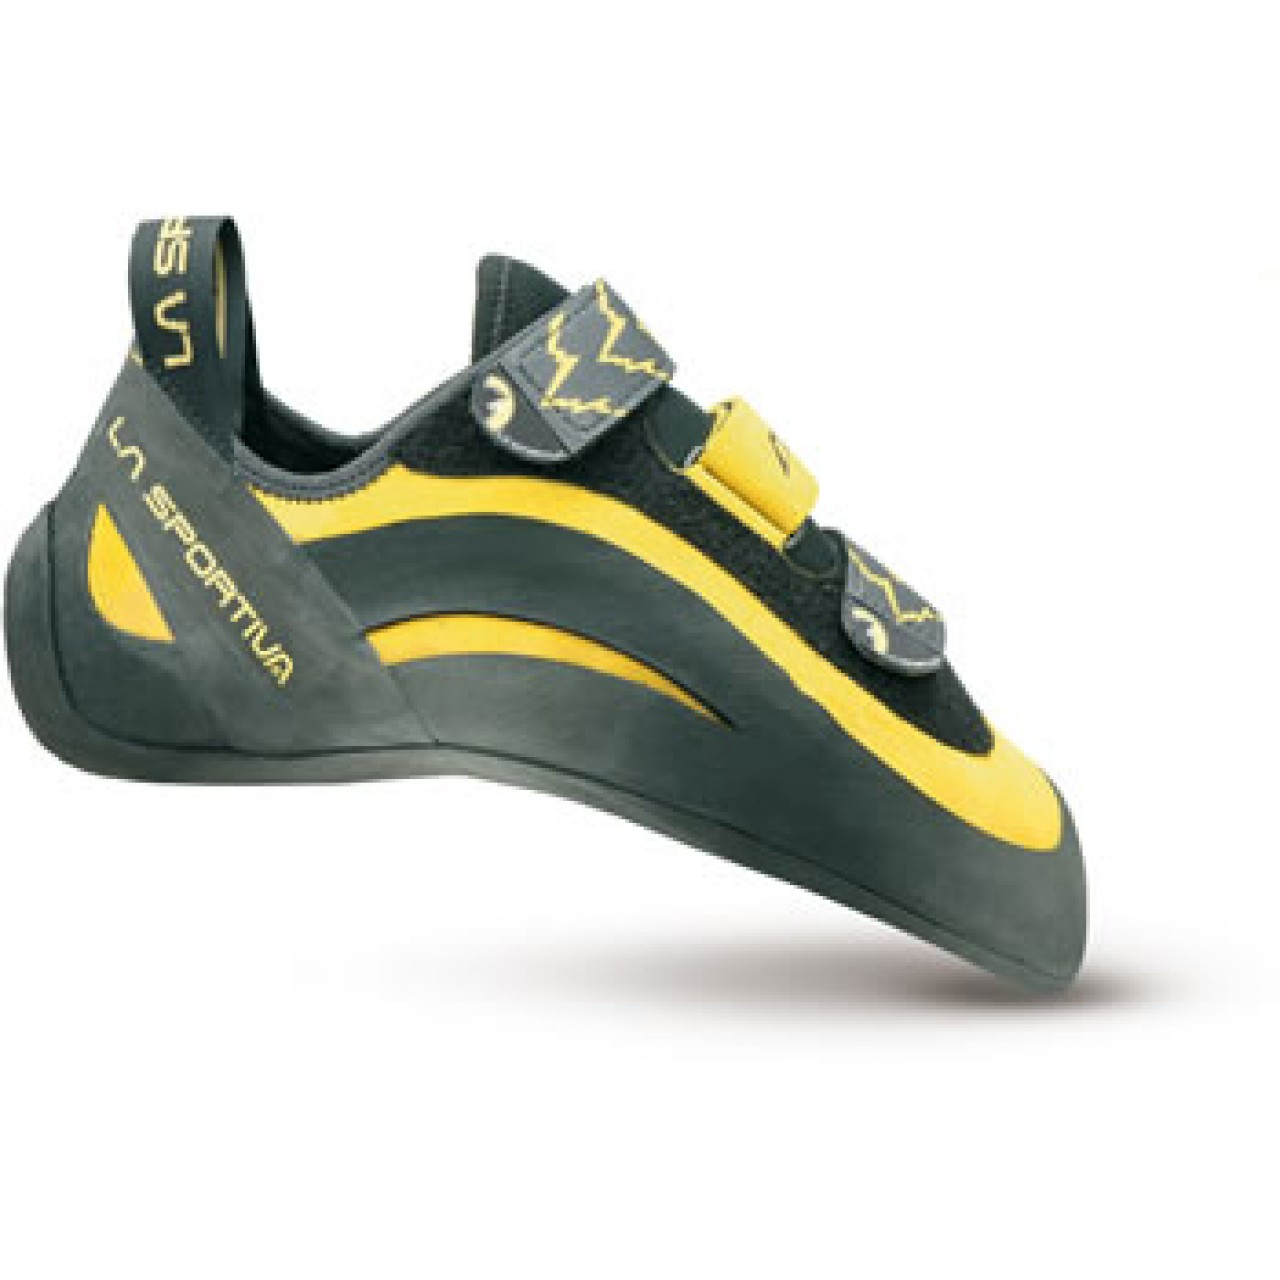 d75f5ad42cbe The shoe everyone was waiting for